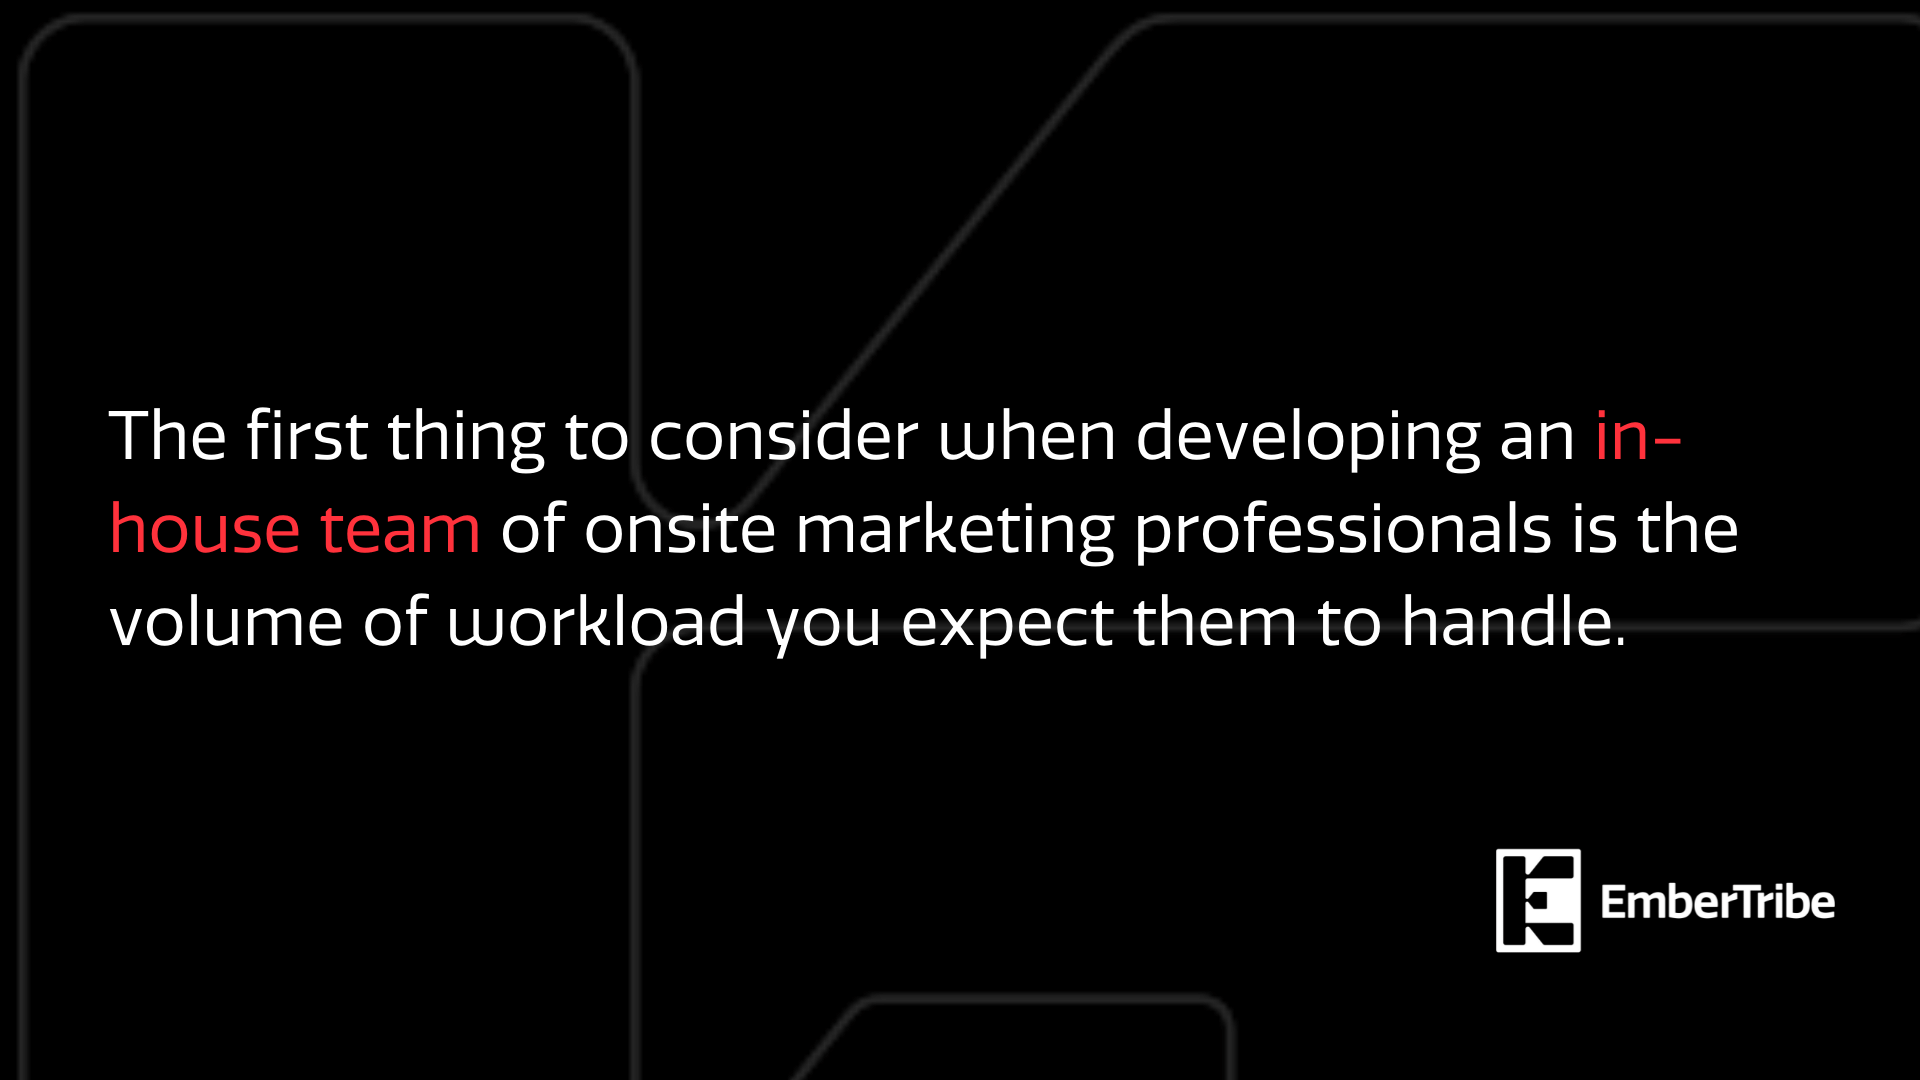 In-house marketing teams